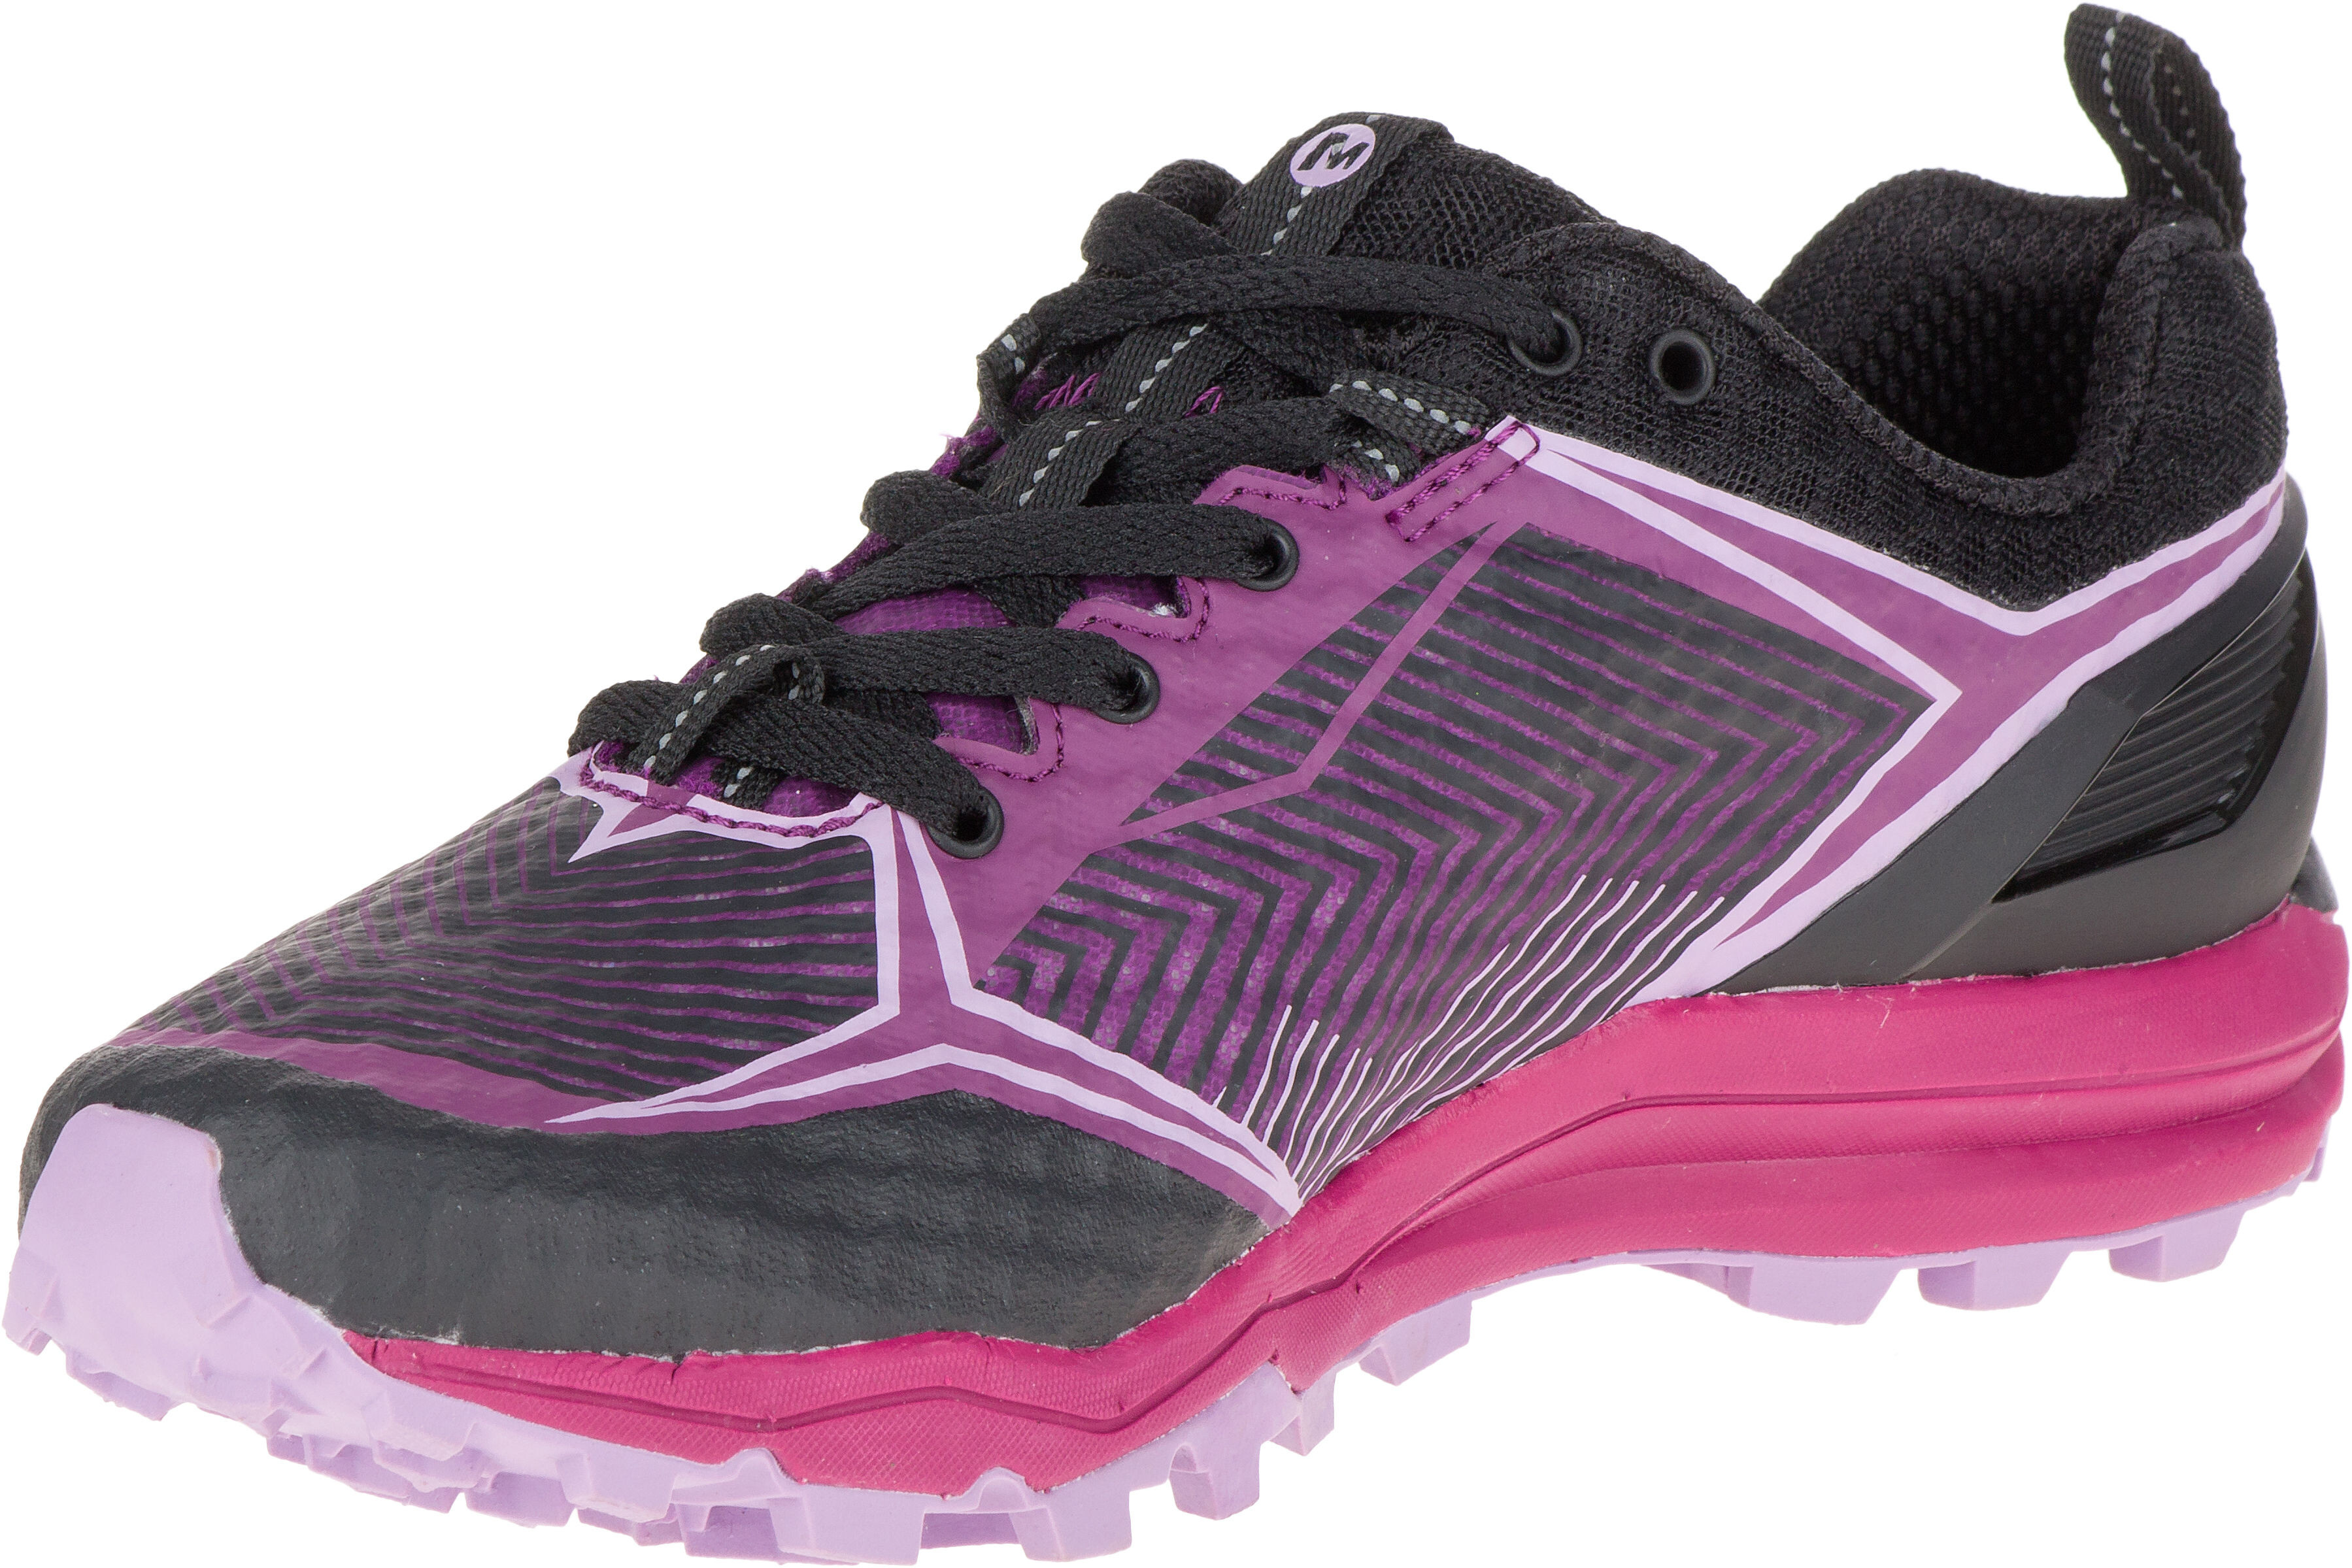 Merrell All Out Crush Shield Trail Running Shoes